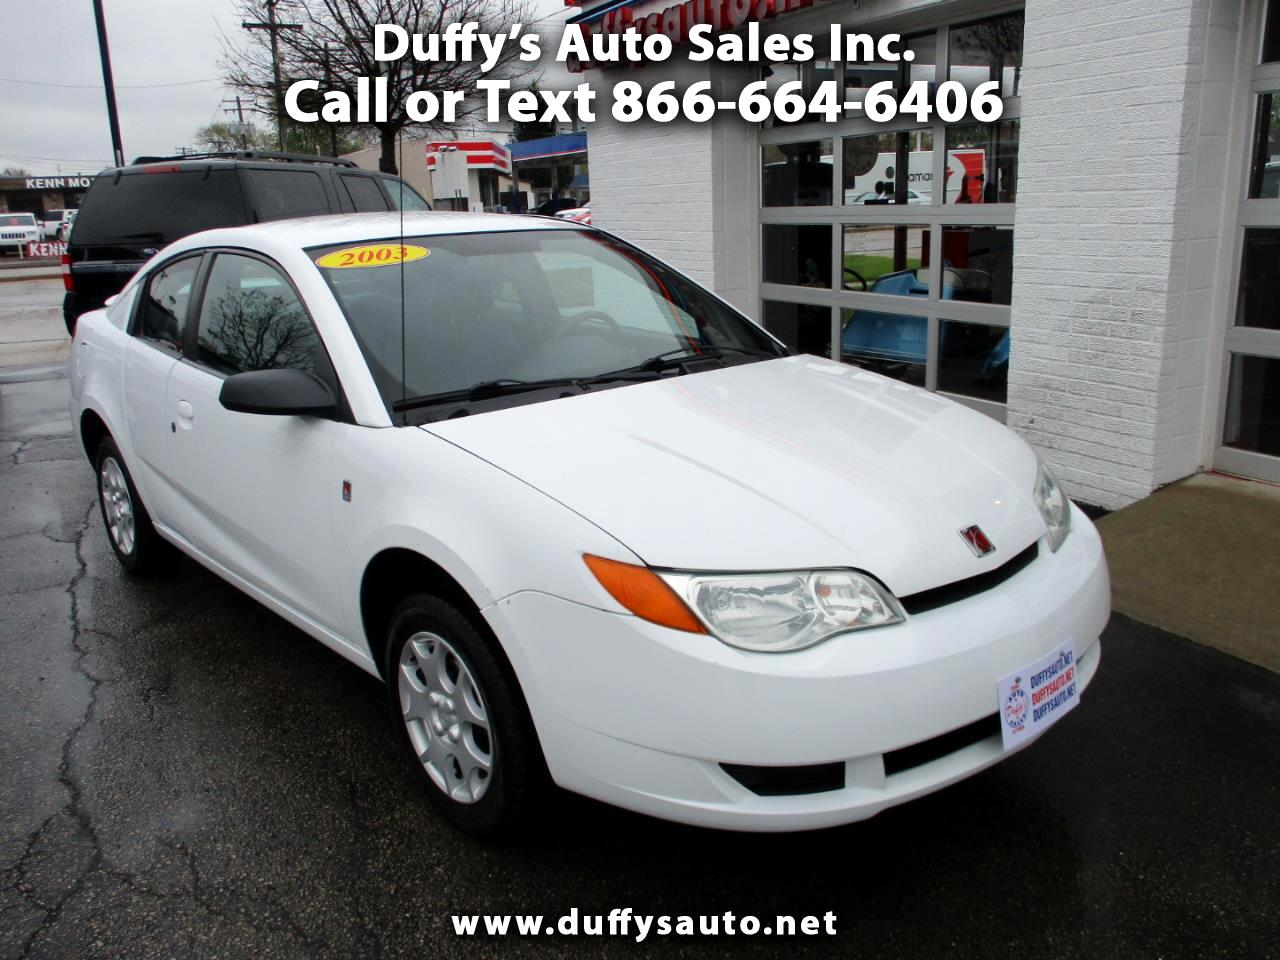 2003 Saturn ION ION 2 Quad Cpe Auto